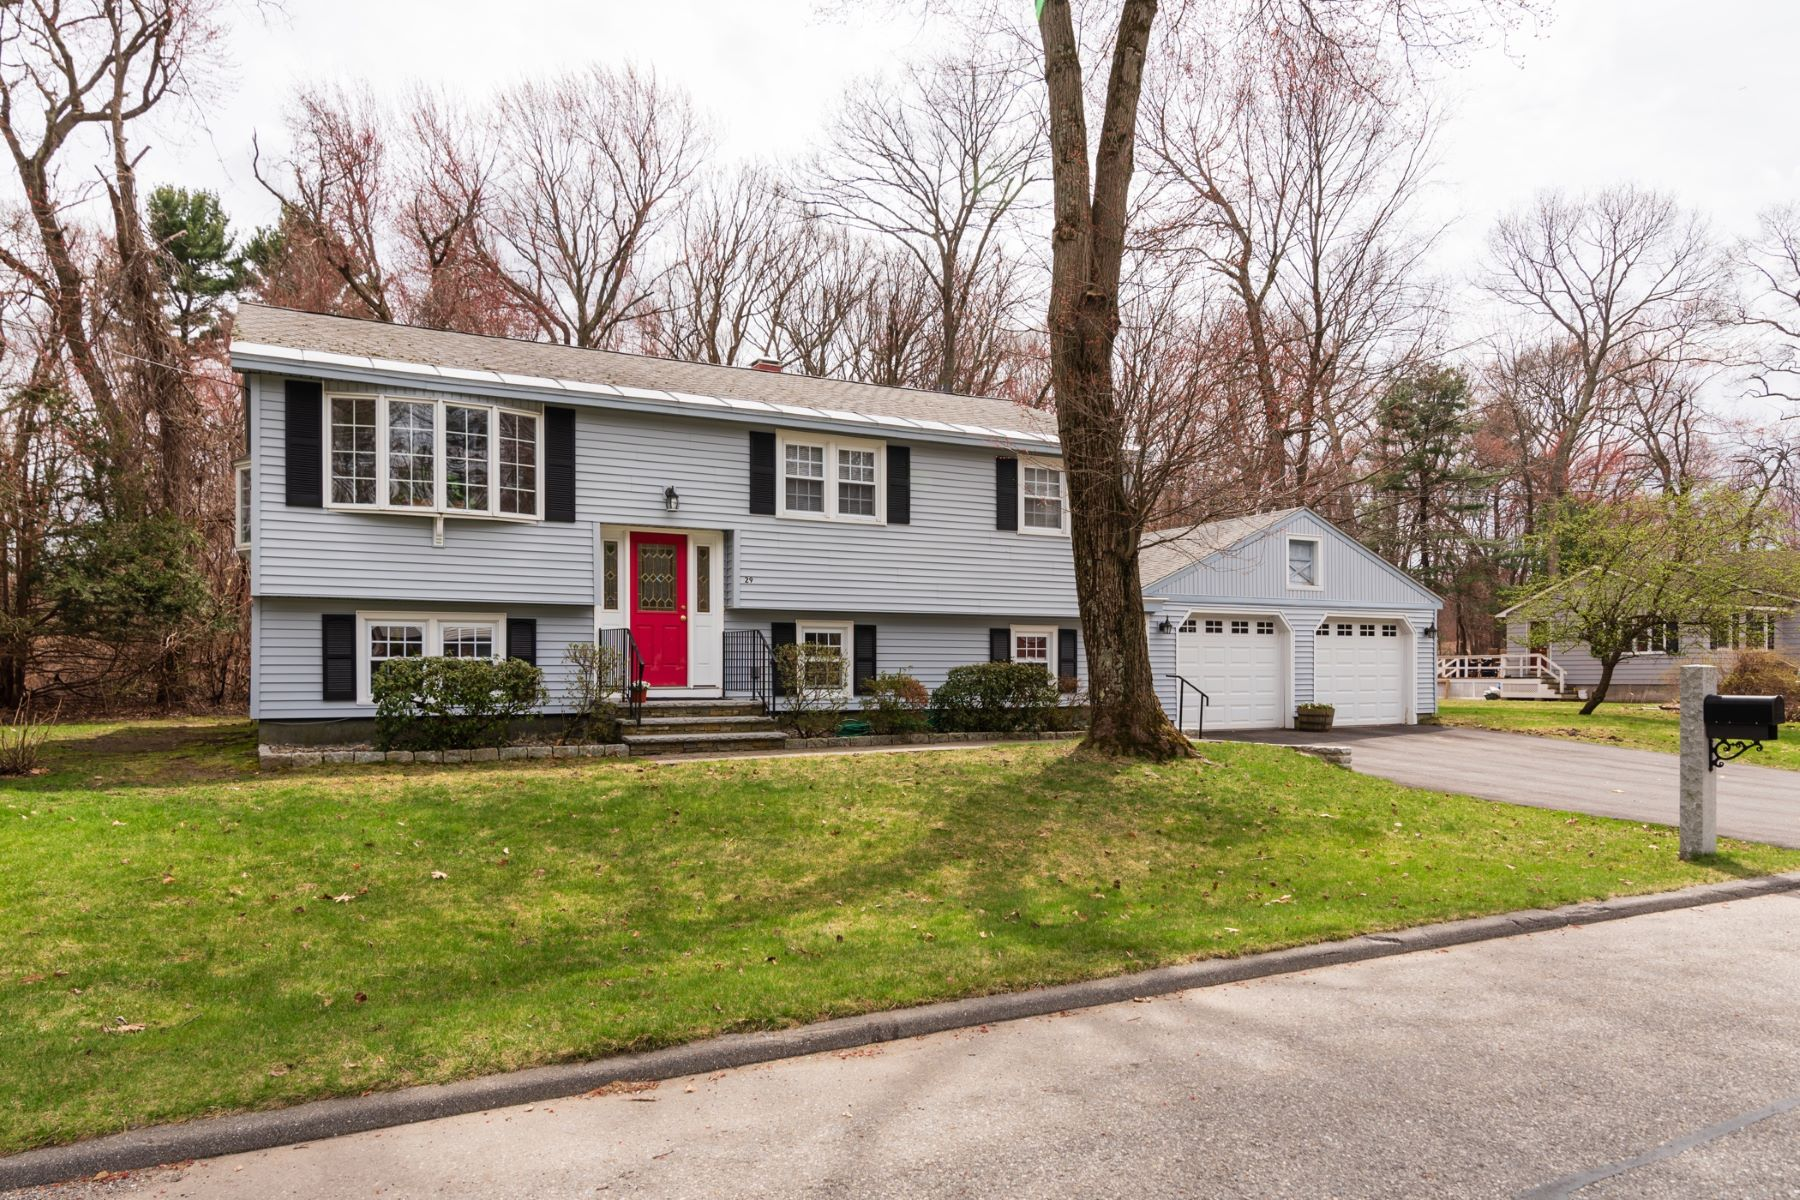 Single Family Home for Active at 29 Glad Valley Drive, Billerica 29 Glad Valley Dr Billerica, Massachusetts 01821 United States